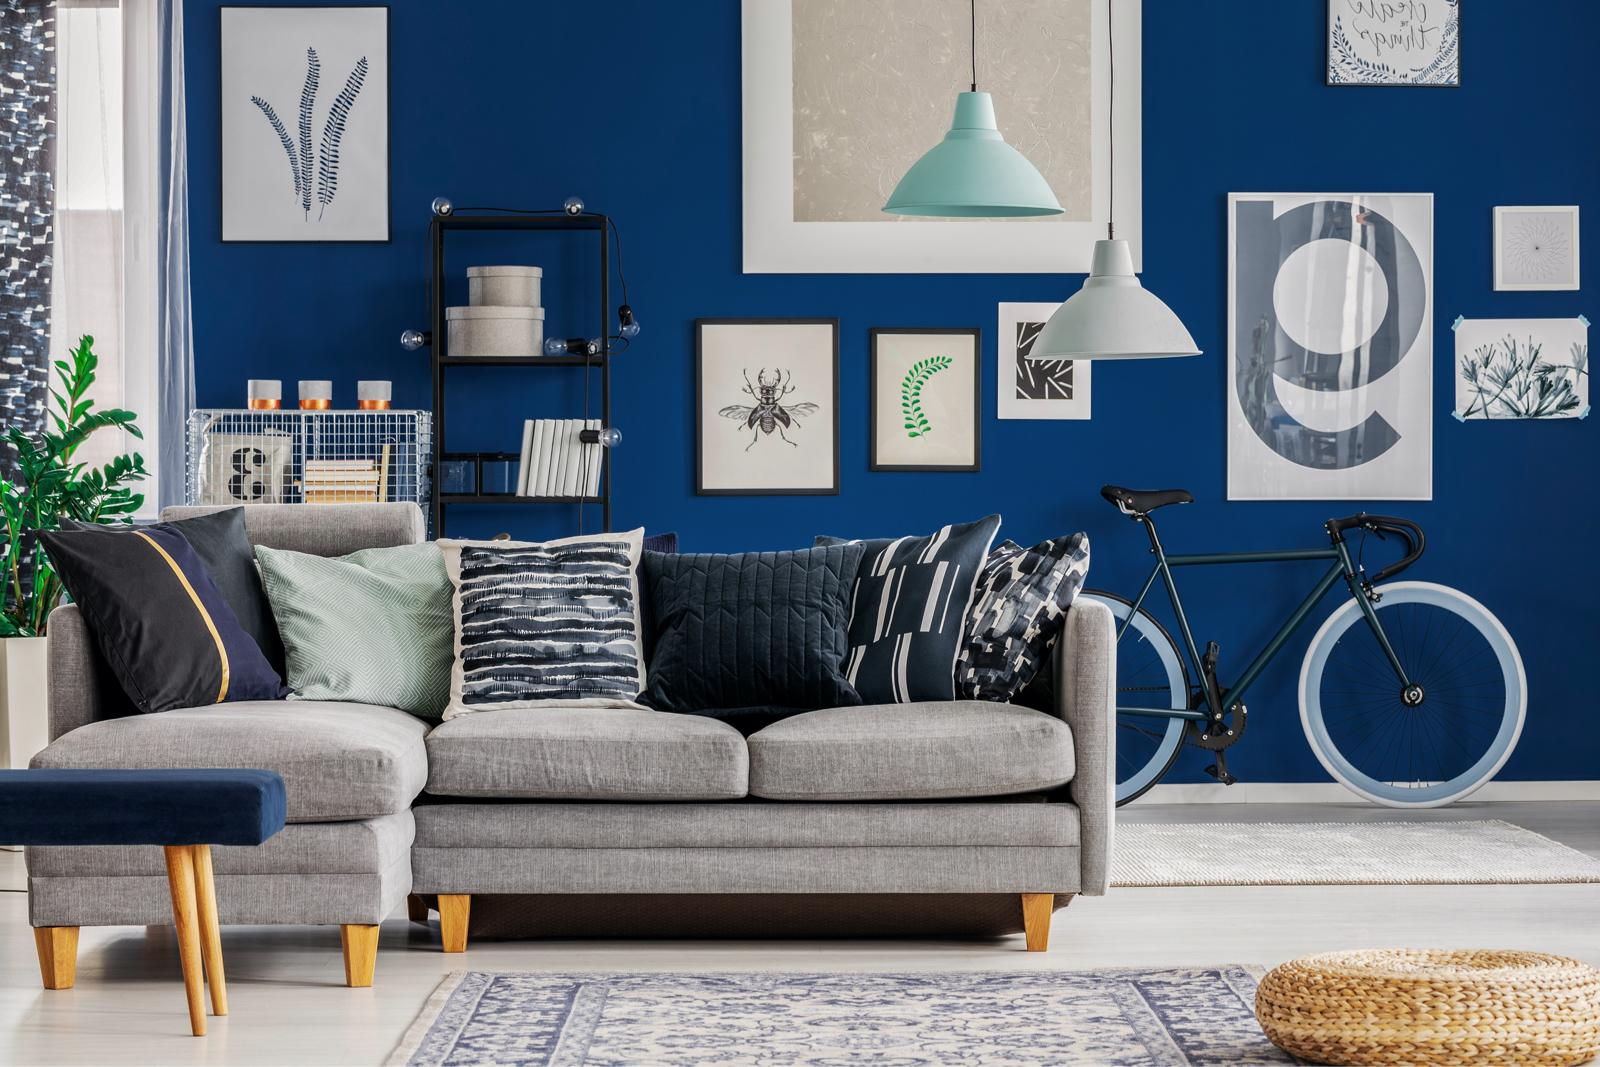 Maximalism Style And Why We Love It 23, Paneling Factory Of Virginia